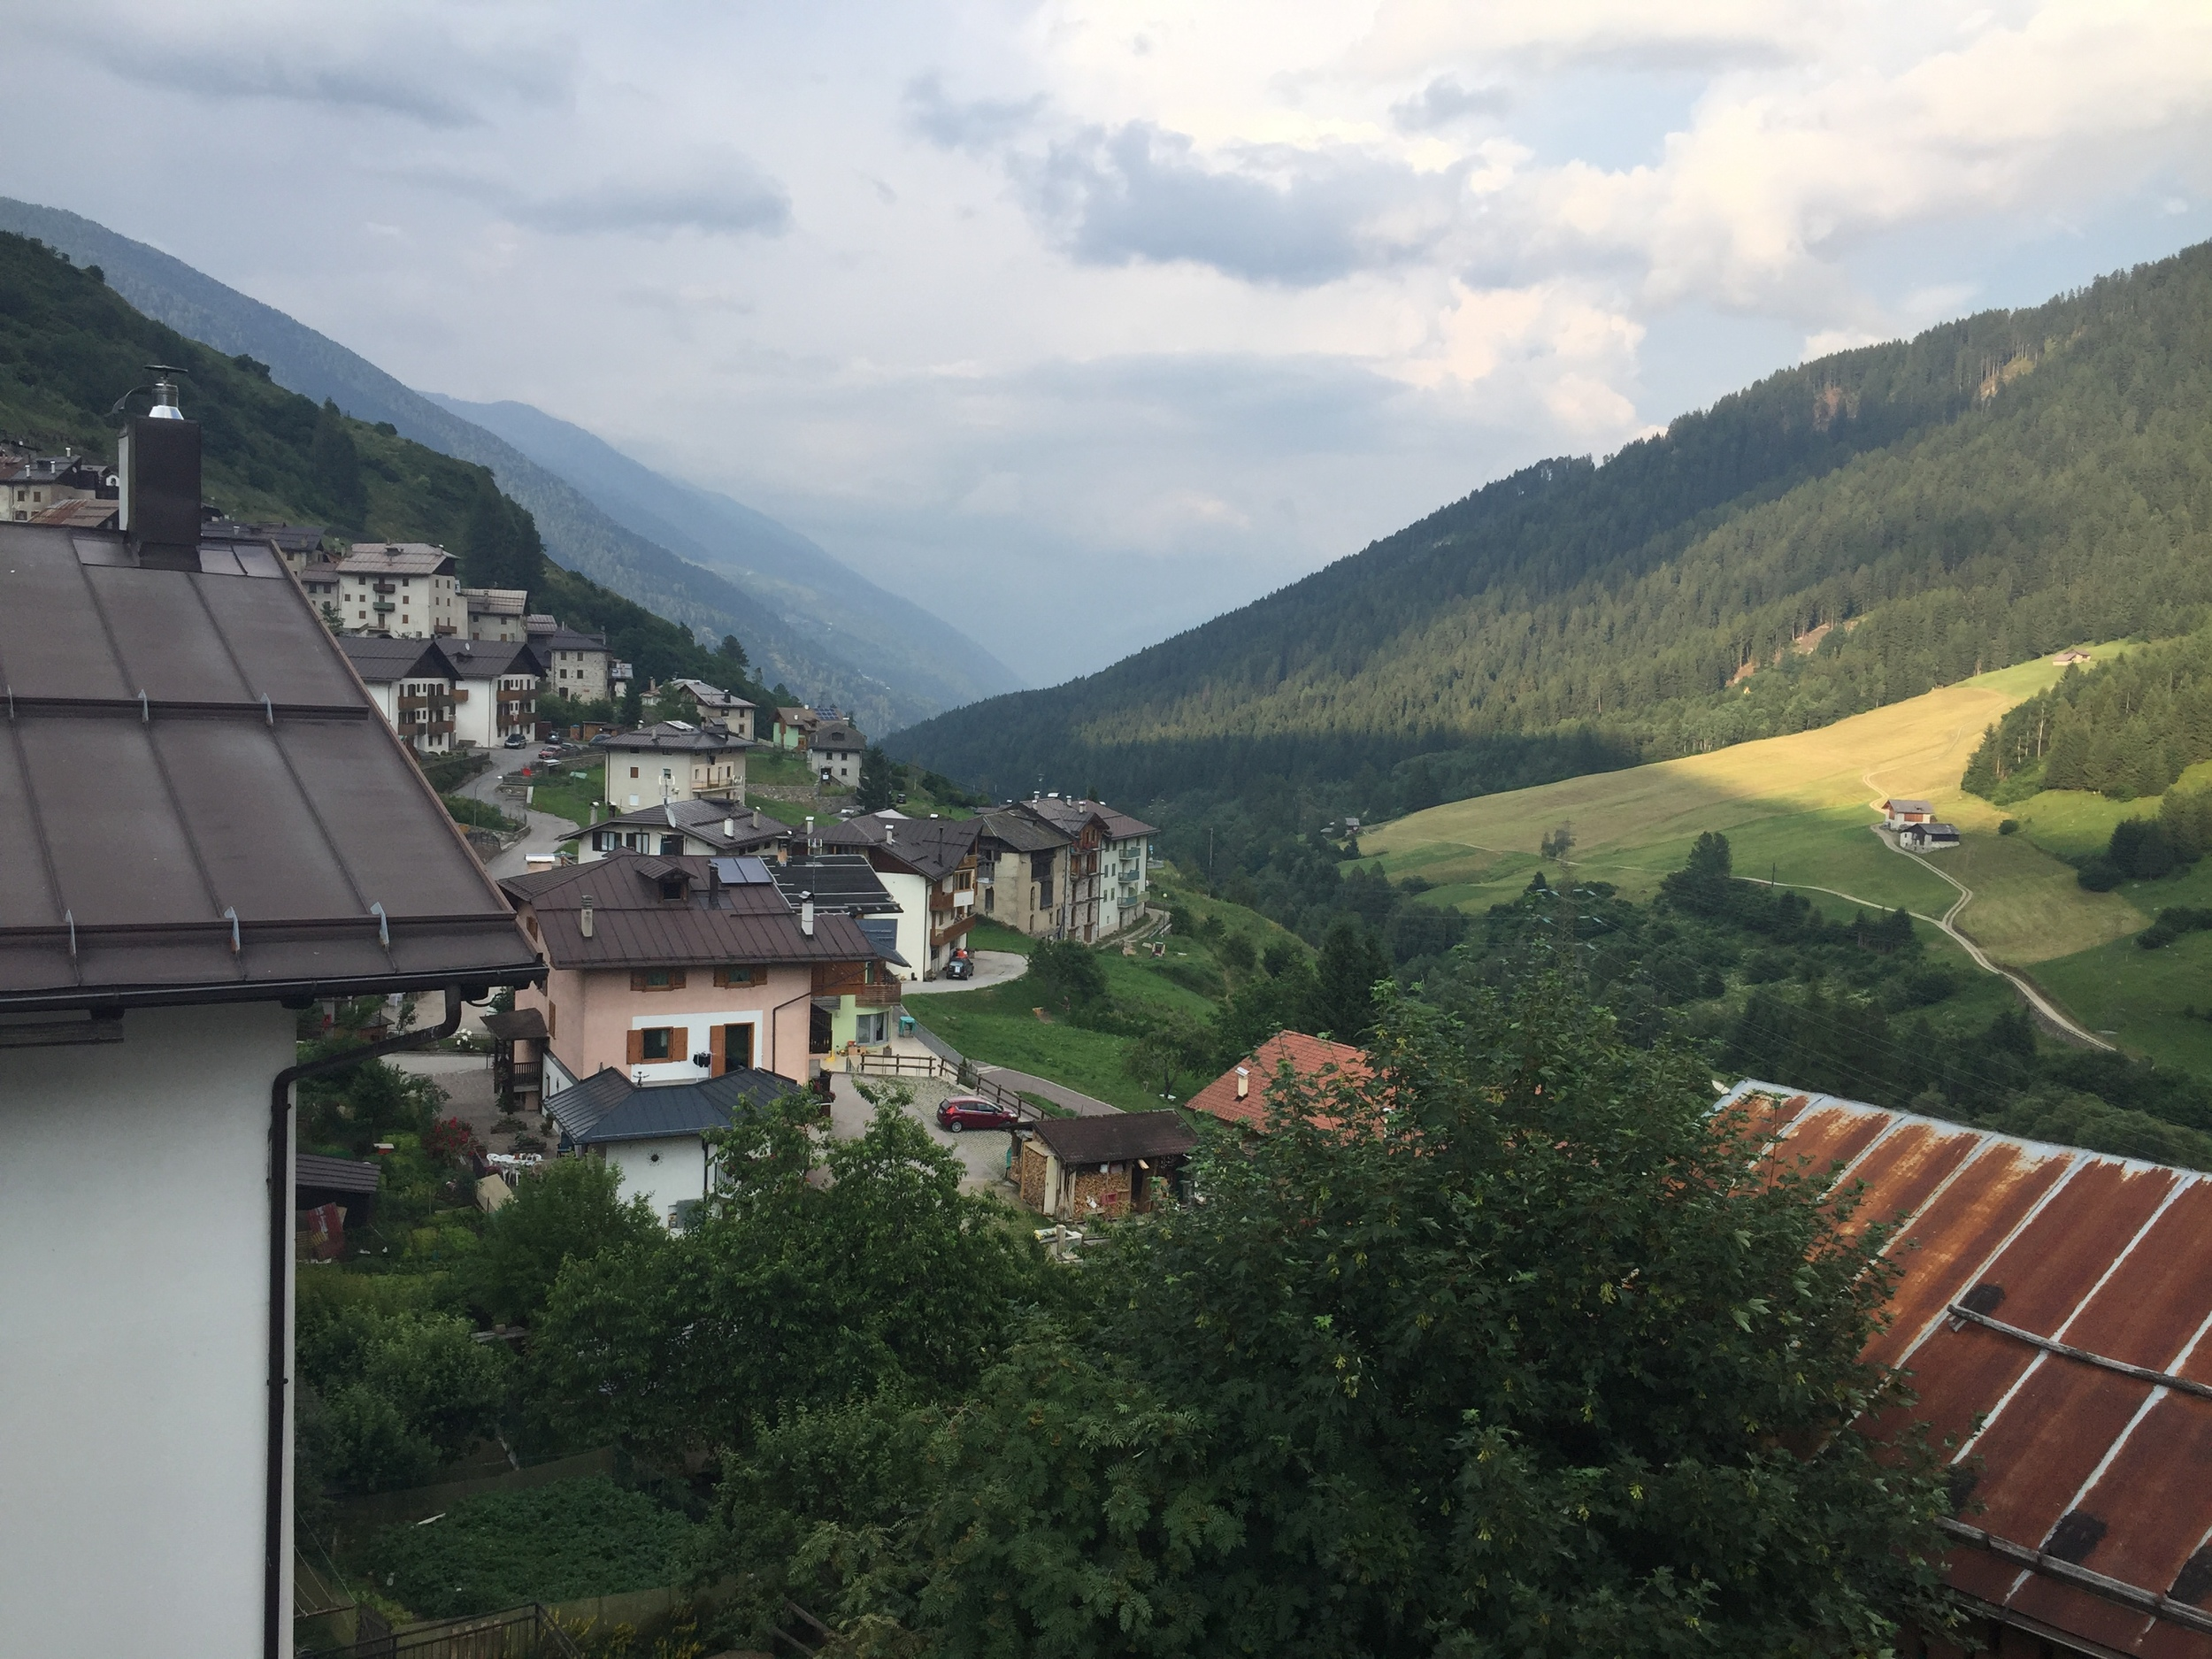 Our view of the val di sole from our bedroom window